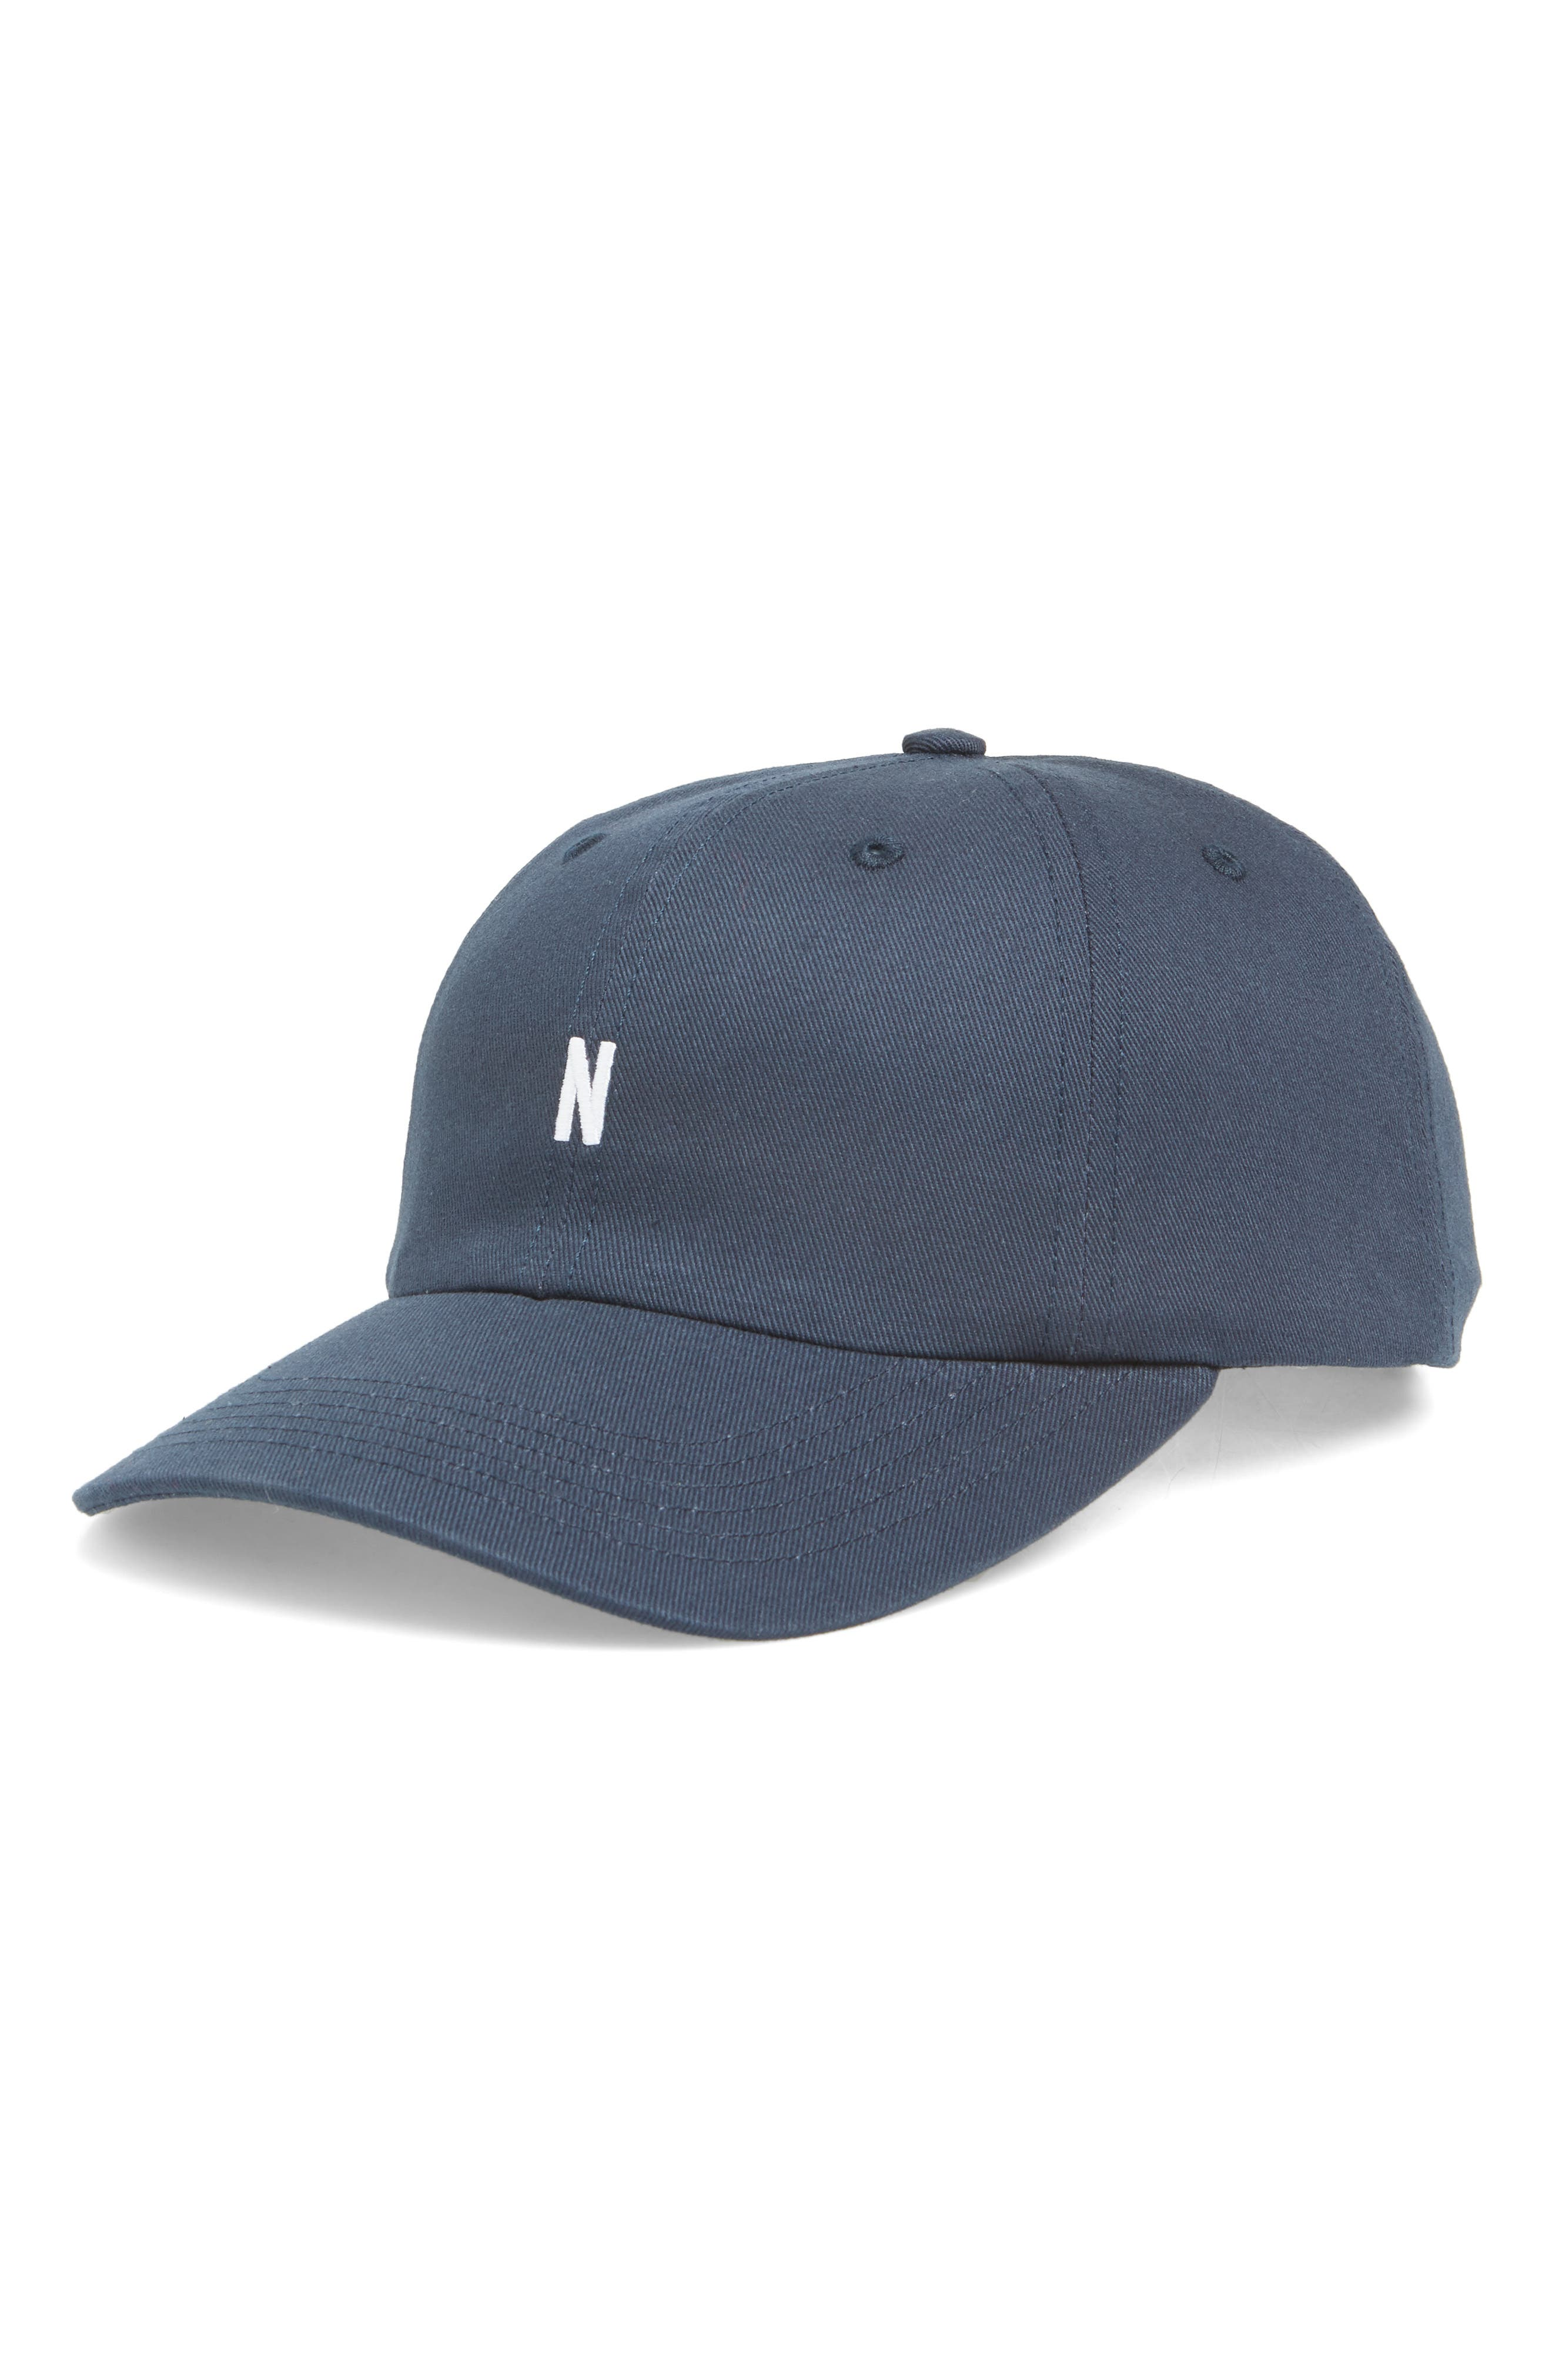 NORSE PROJECTS Twill Ball Cap - Blue in Dark Navy